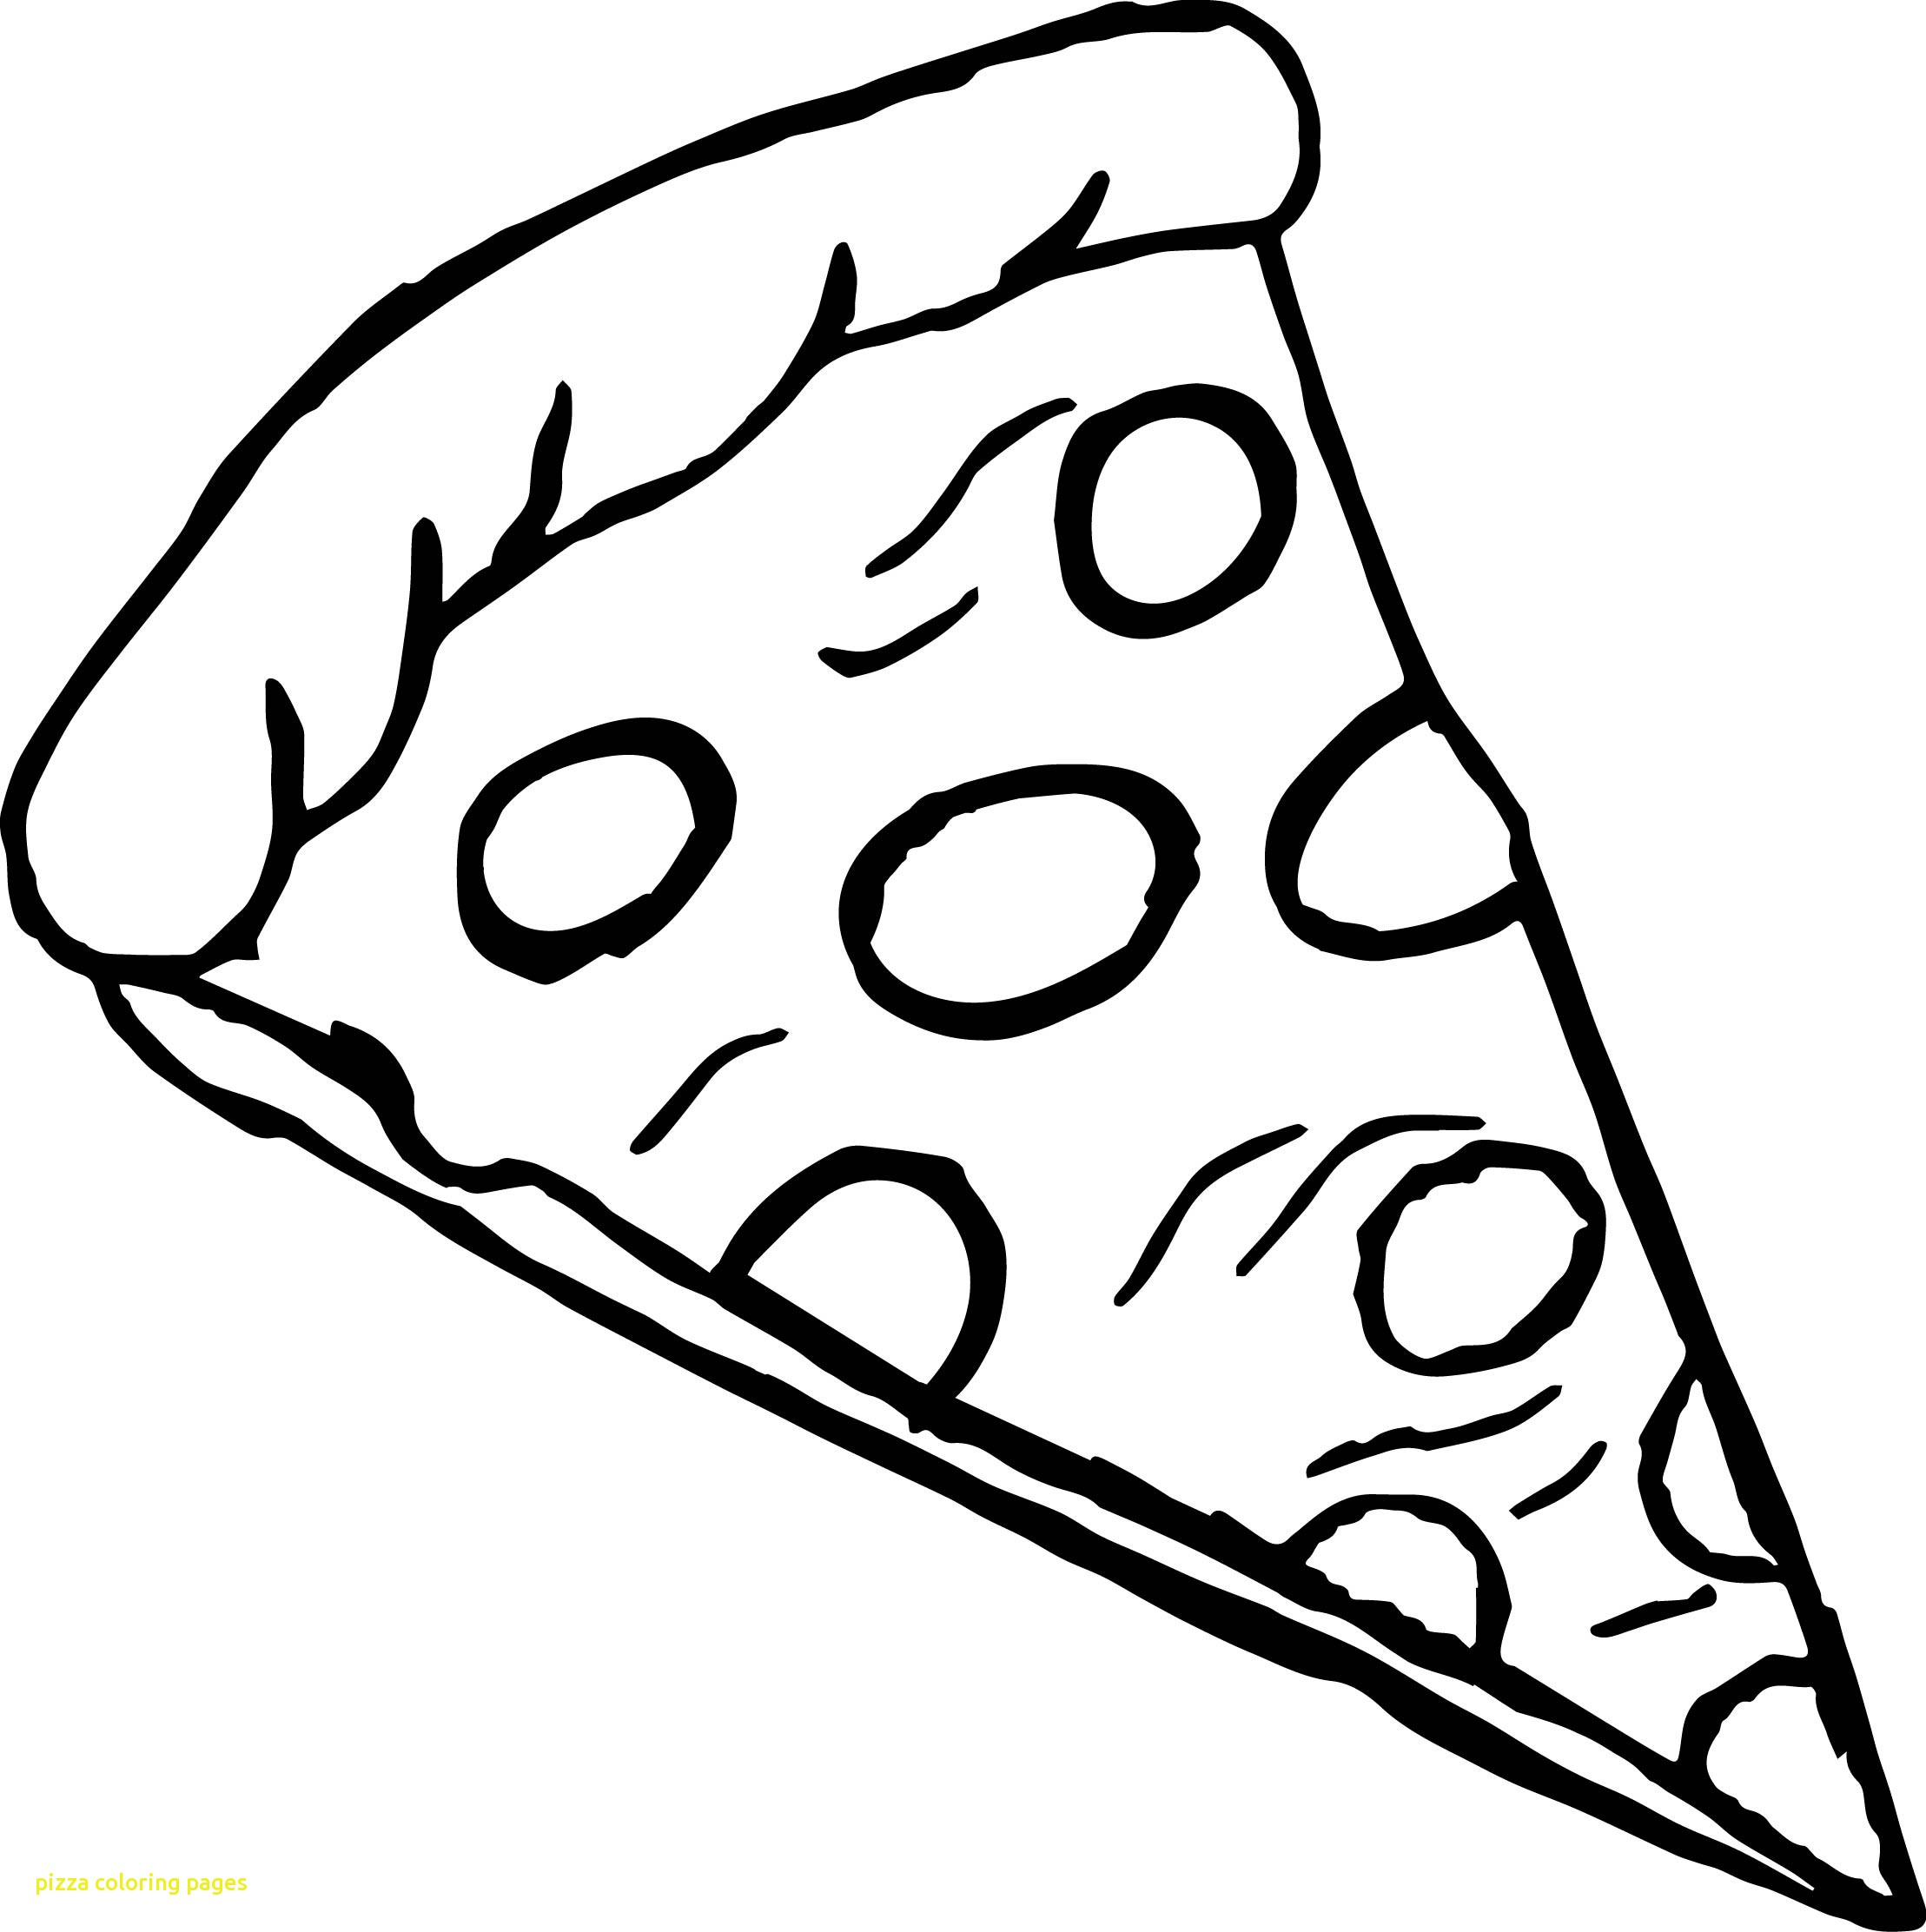 2217x2224 Pizza Toppings Coloring Pages Archives